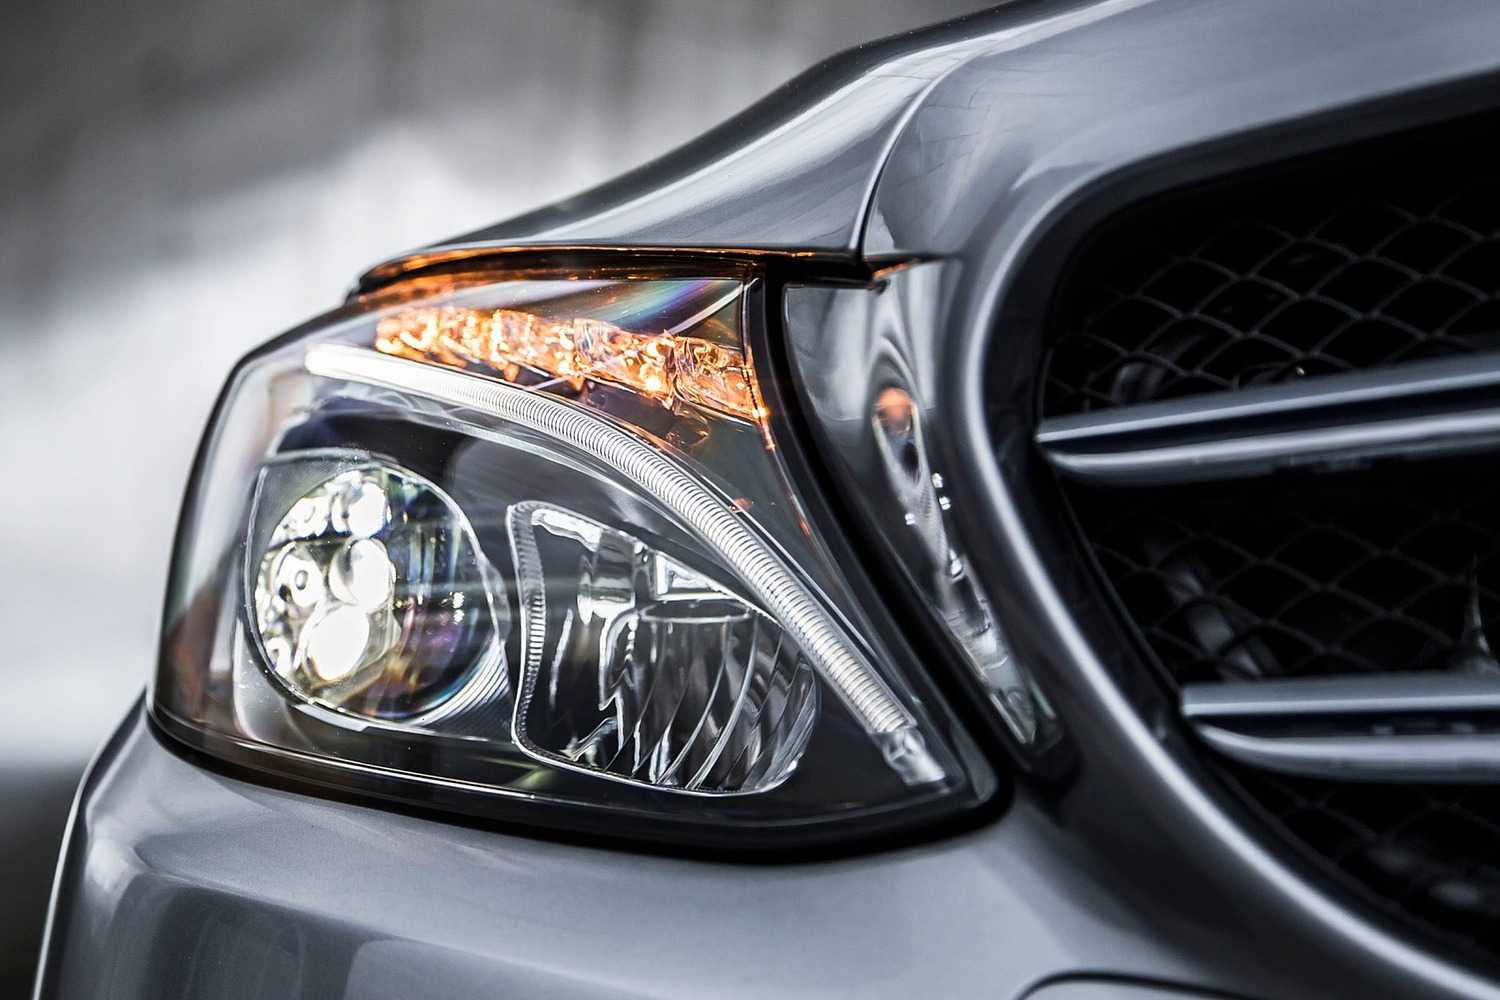 2018 Mercedes-Benz C-Class C 300 4MATIC Sedan Headlamp Detail